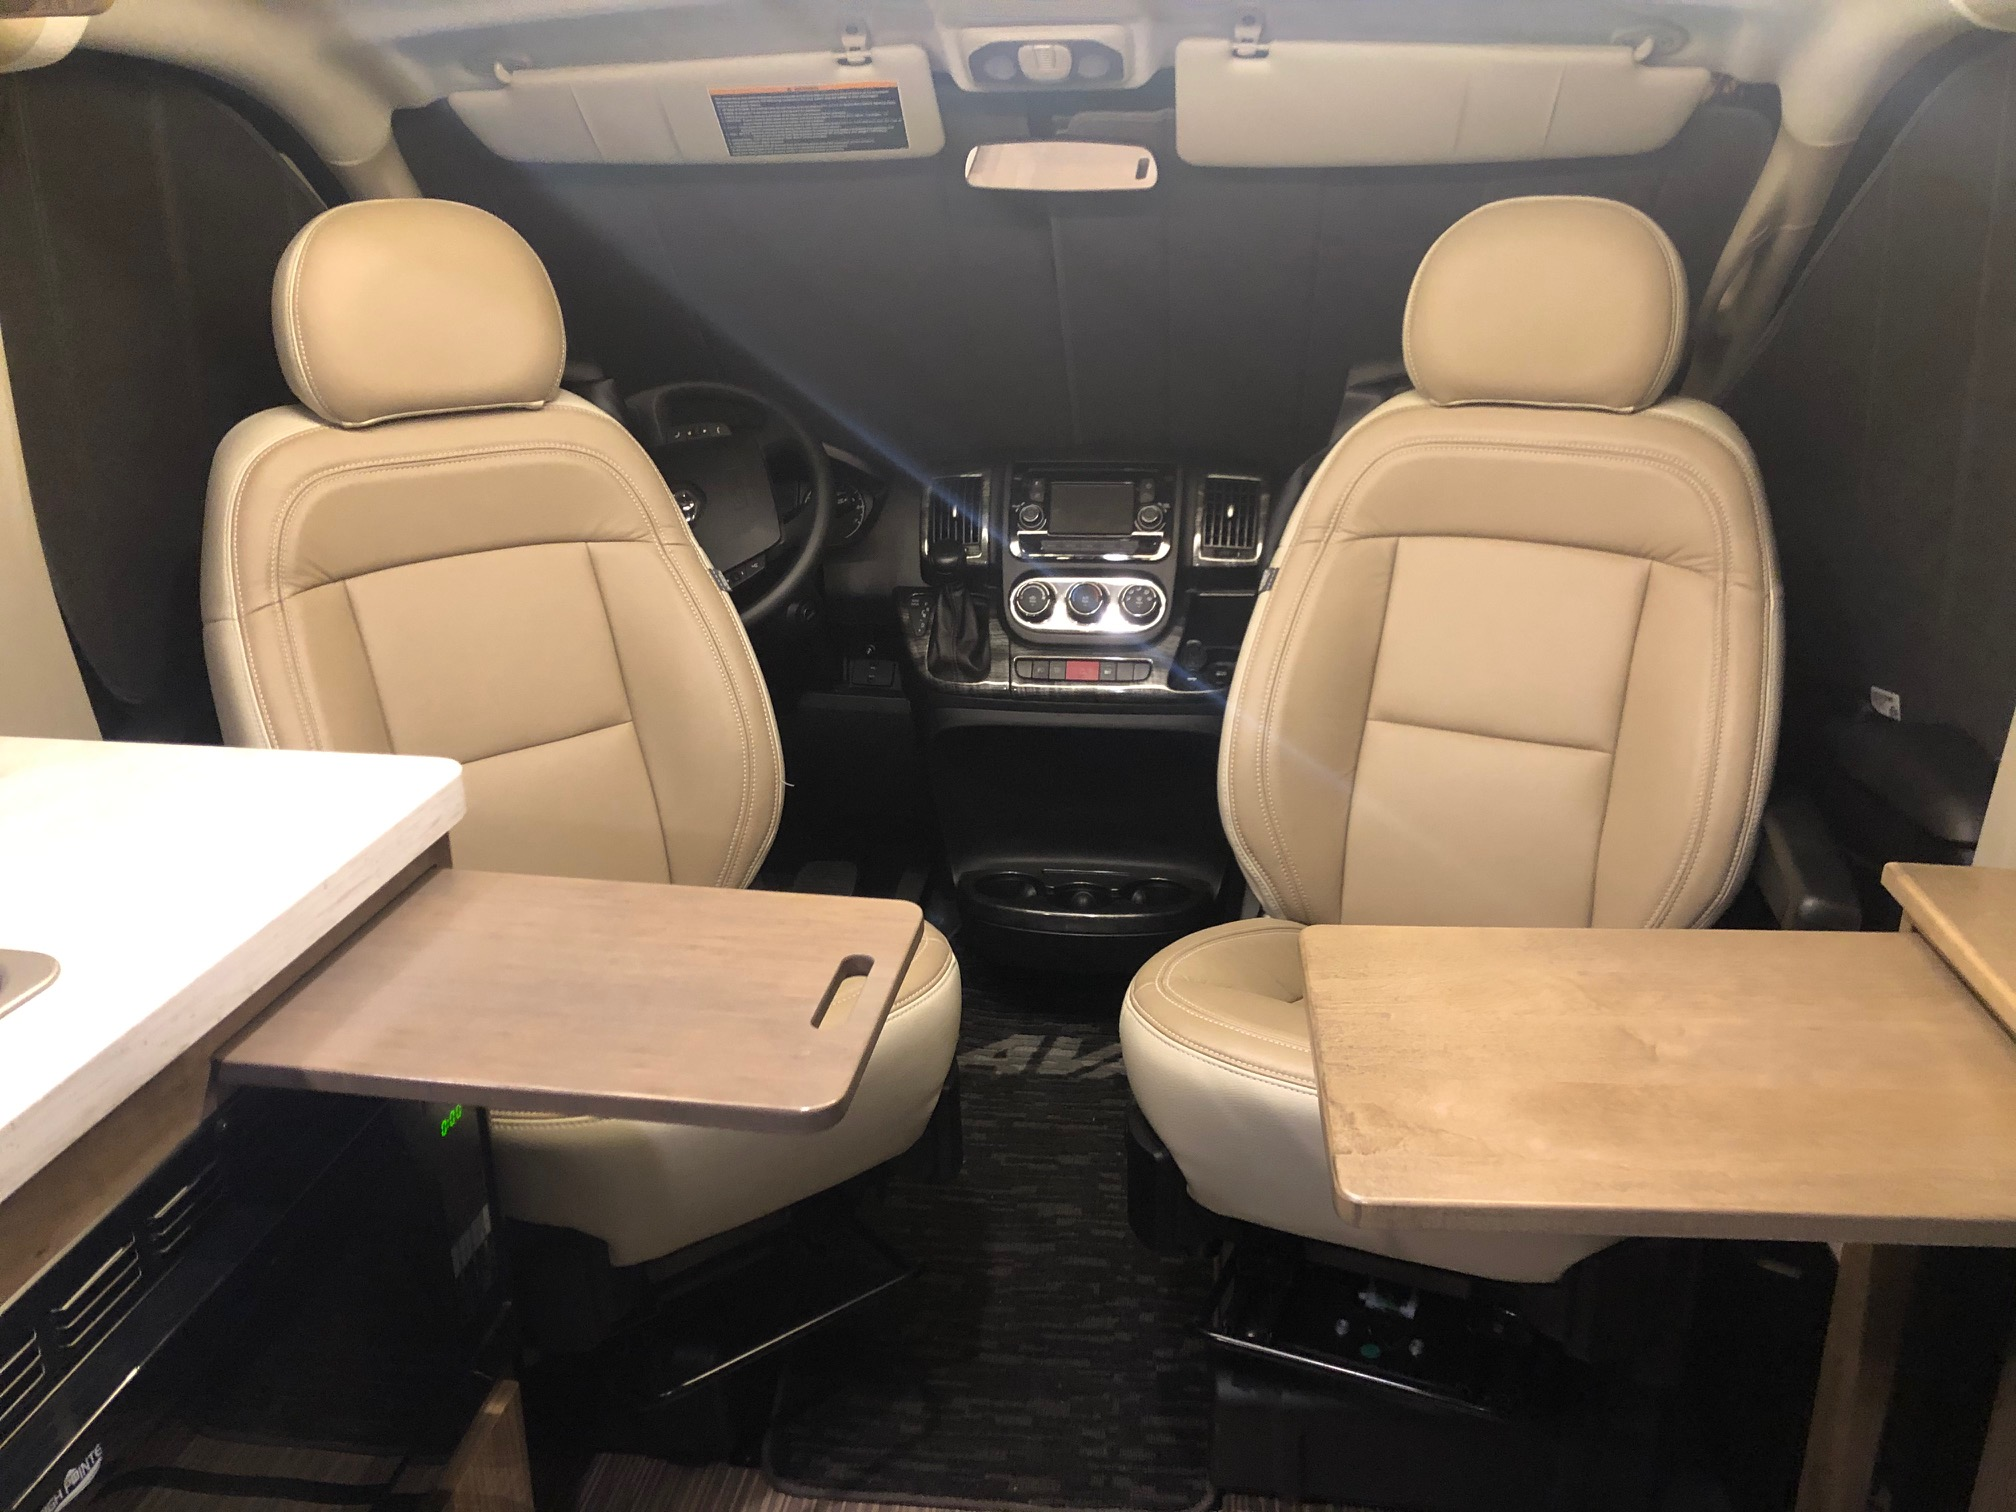 Cab chairs swivel for Eating, Watching TV/A Movie, Working, Etc. when parked.. Winnebago Travato 2019